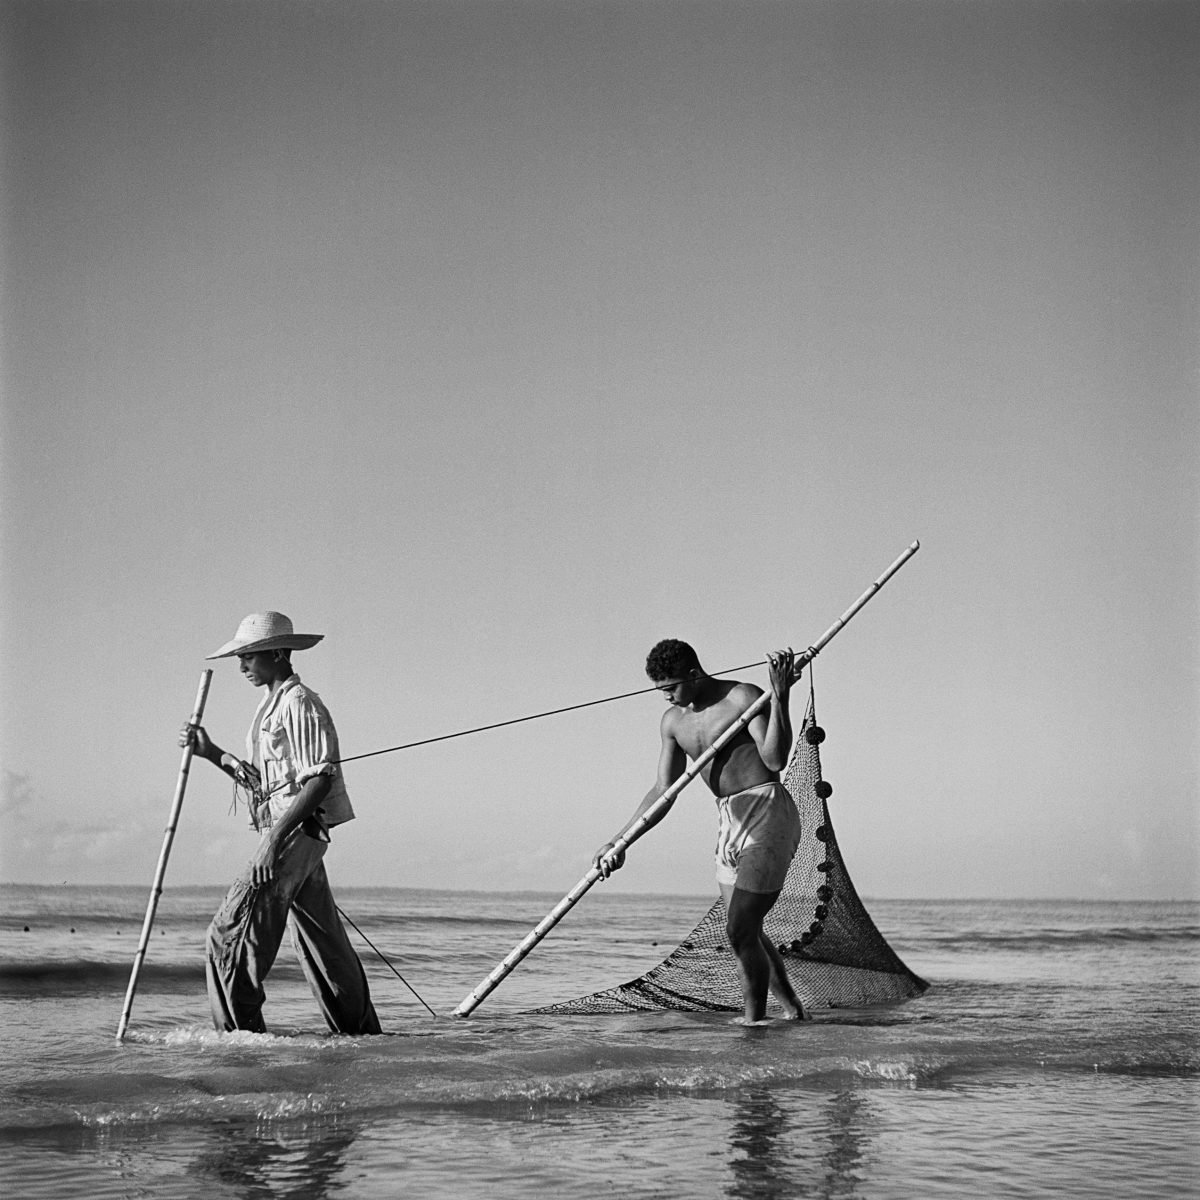 Black and white portrait photograph of Brazilian fishermen by Marcel Gautherot